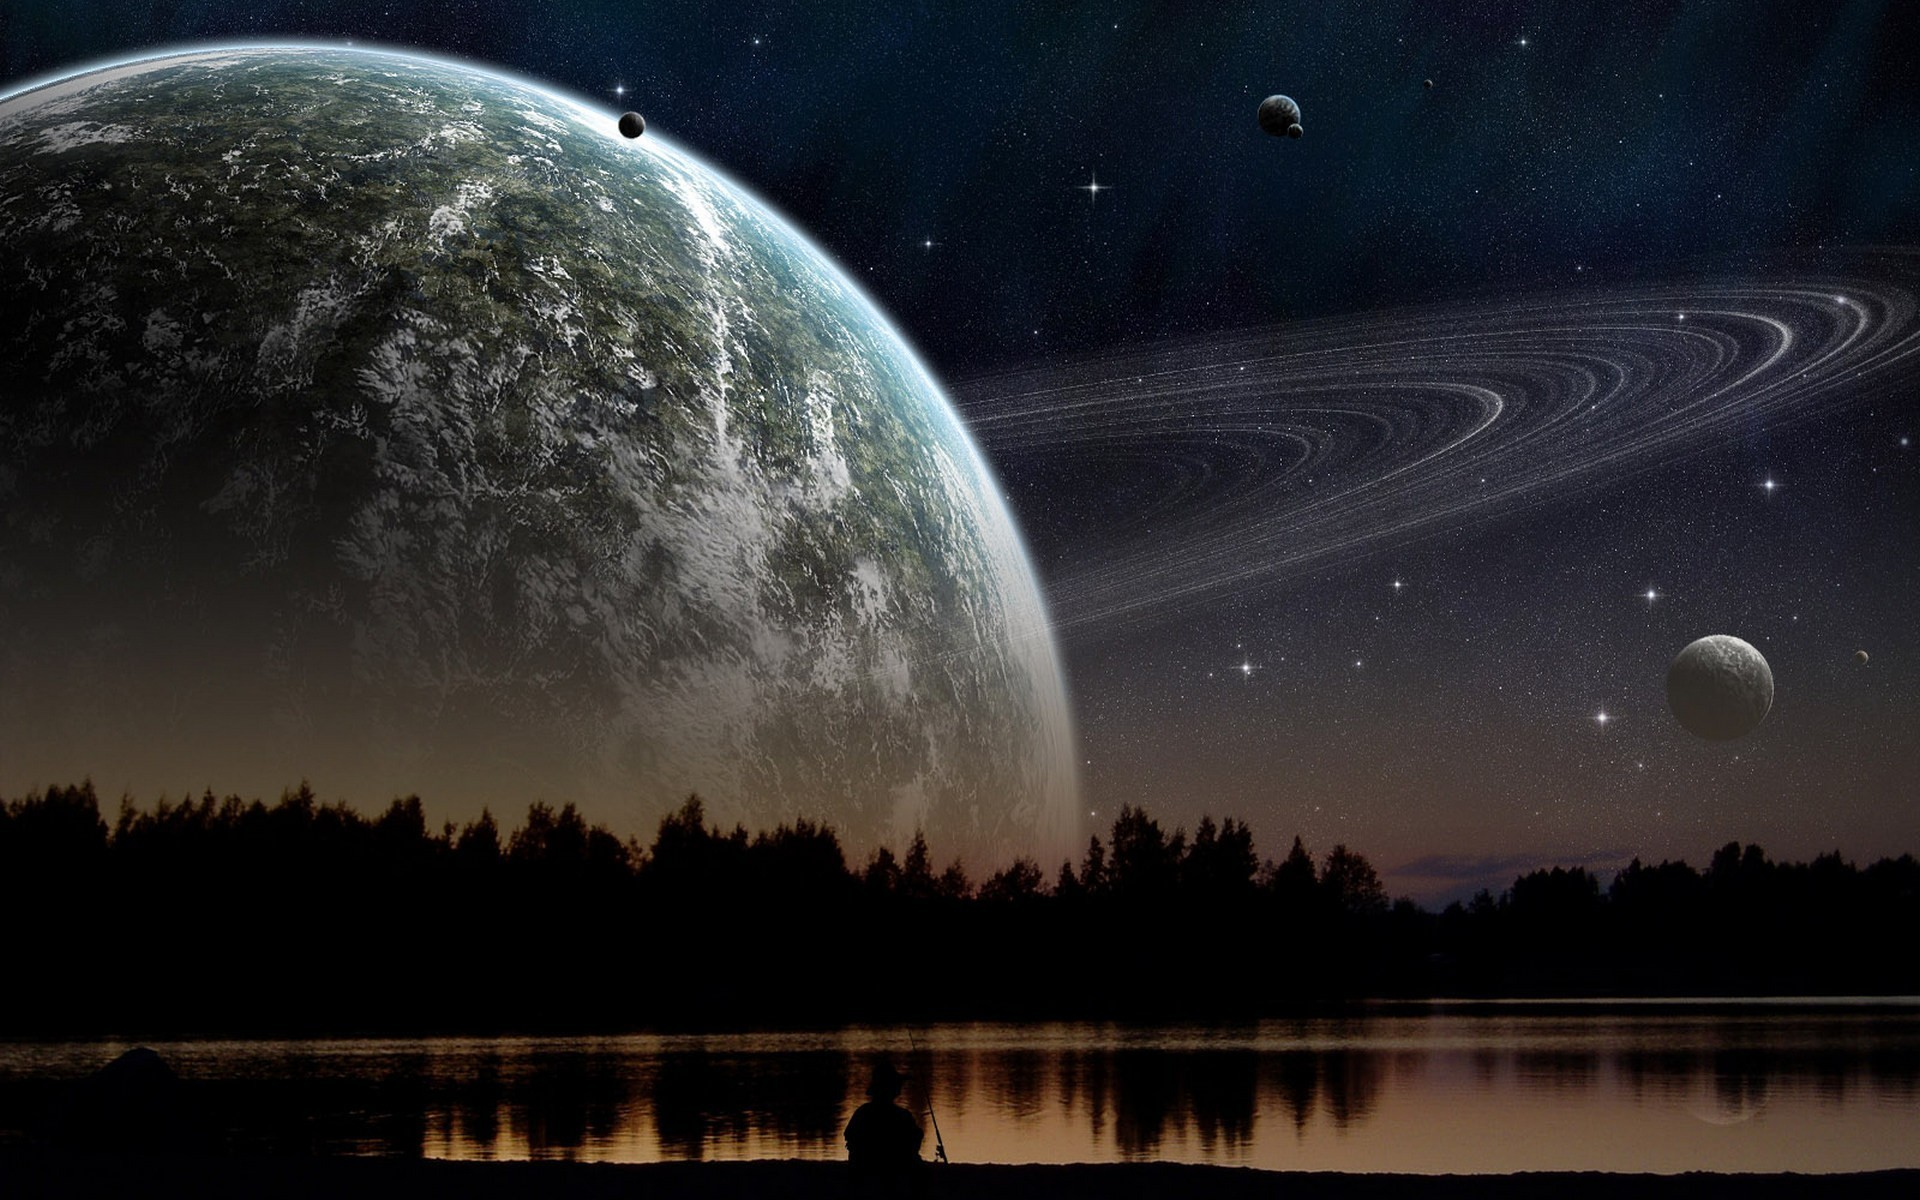 Preview gas giant in night sky in view from lake shore